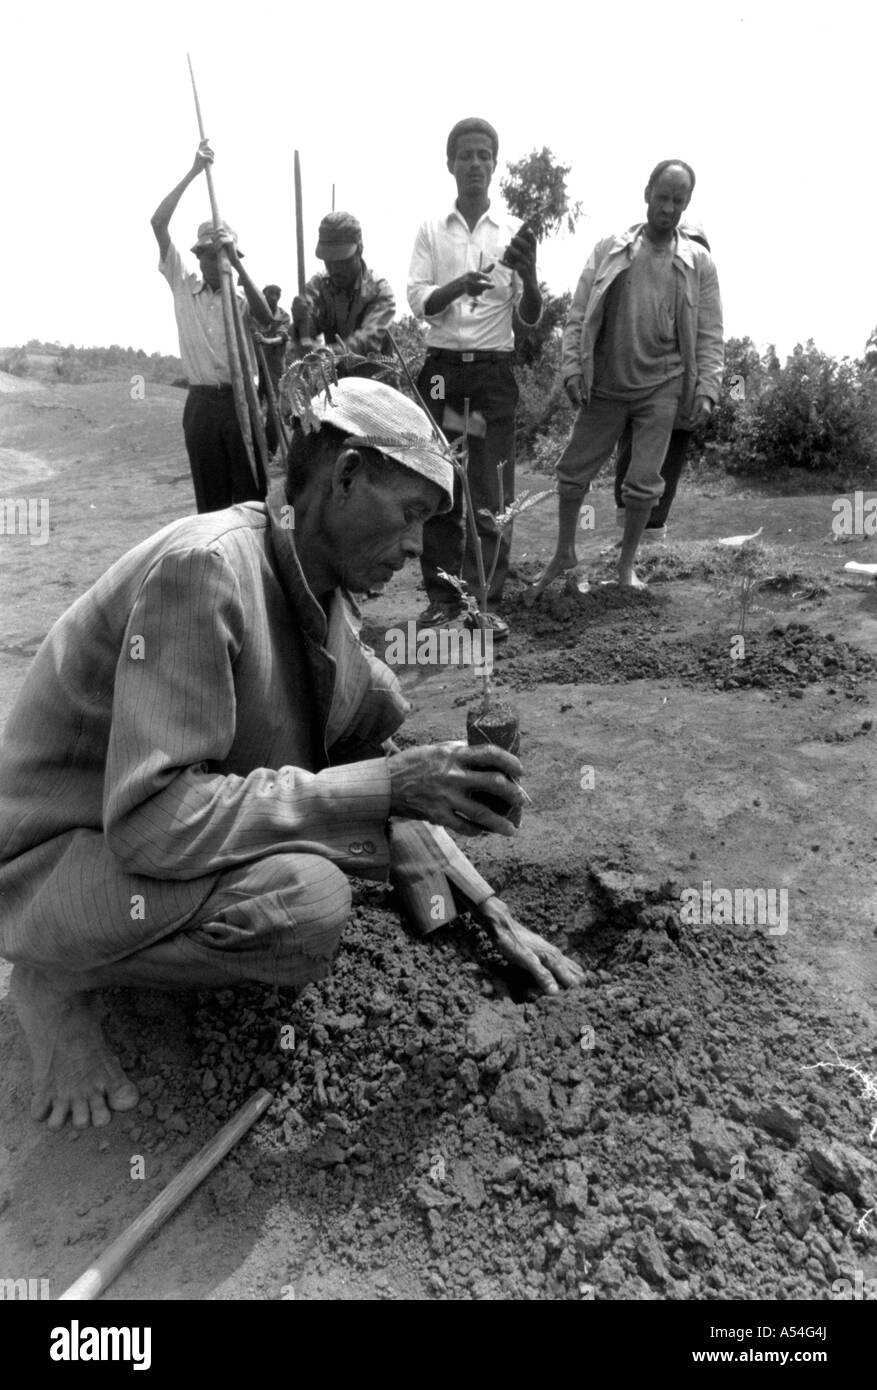 Painet hq1417 black and white environment planting trees deforested area western shoa ethiopia ecology images reforestation - Stock Image